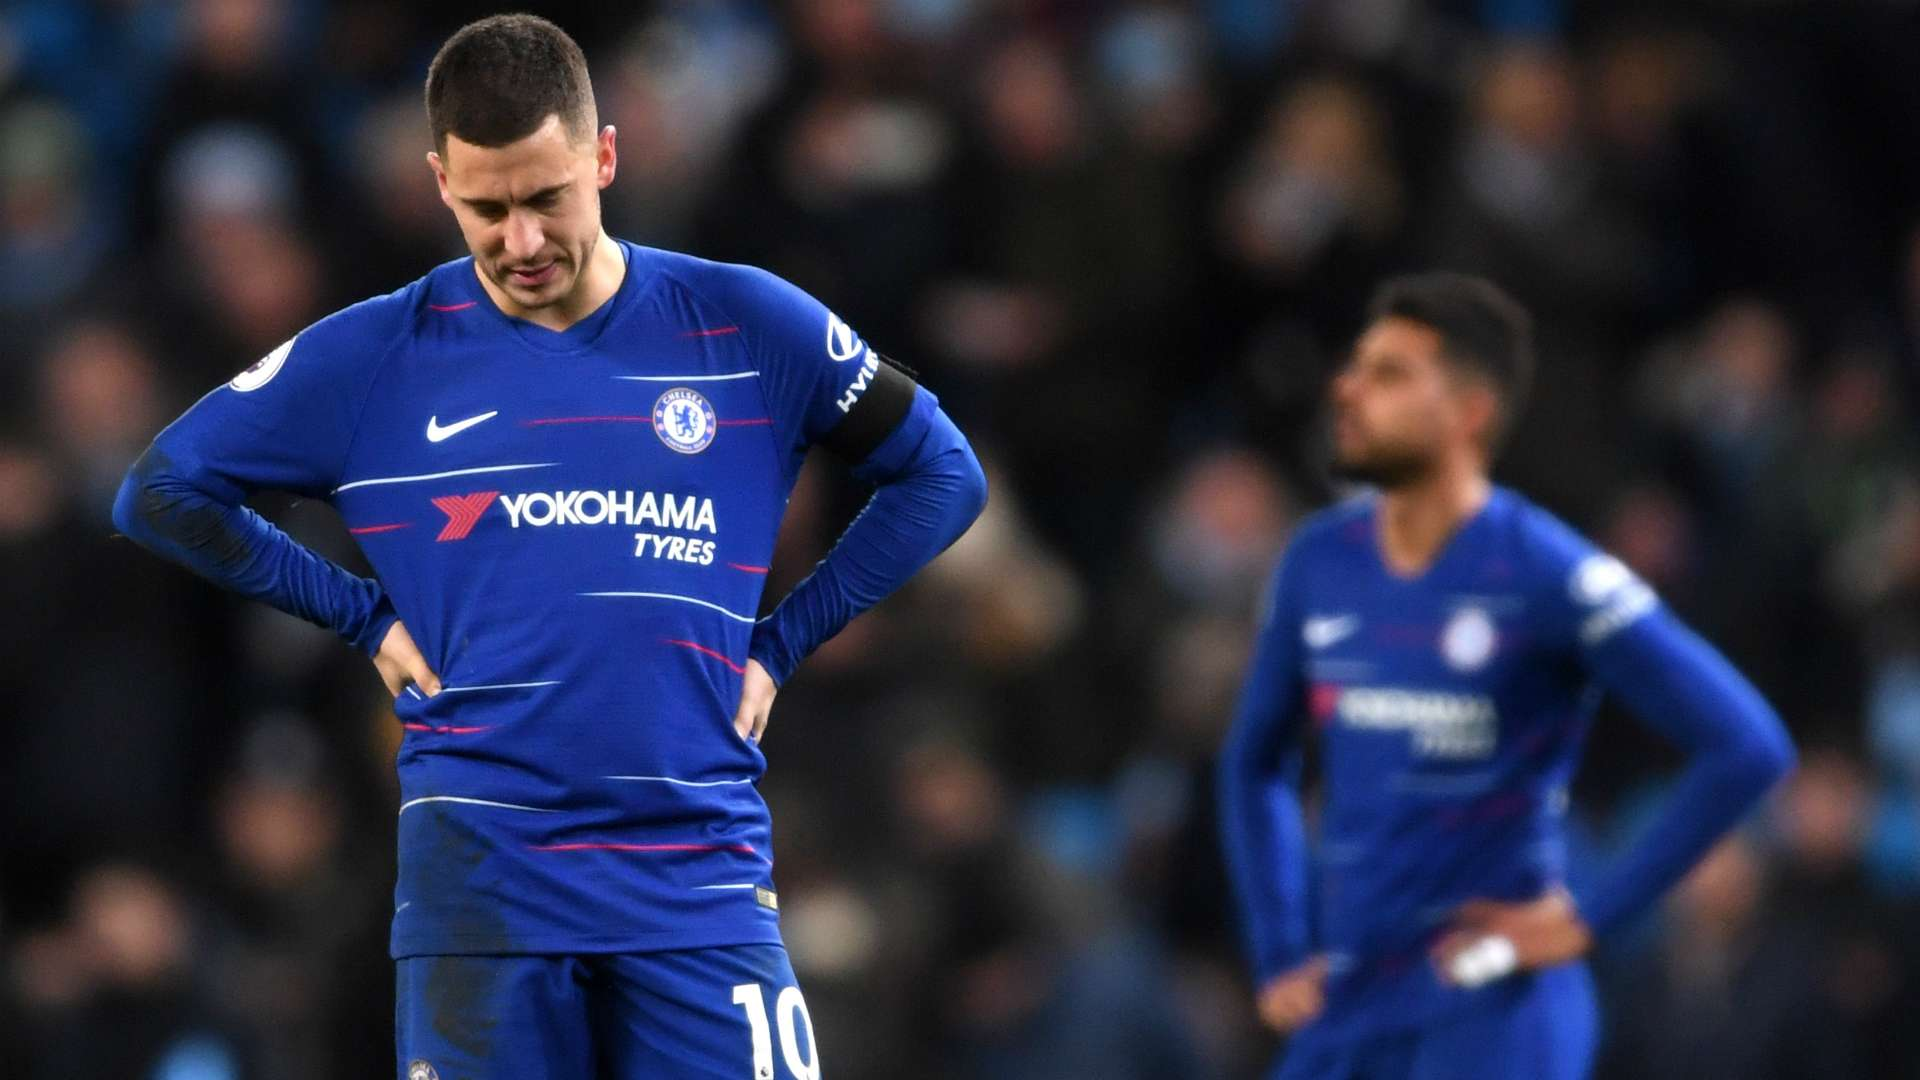 Chelsea transfer ban: Why FIFA sanctioned Blues & what is the appeal